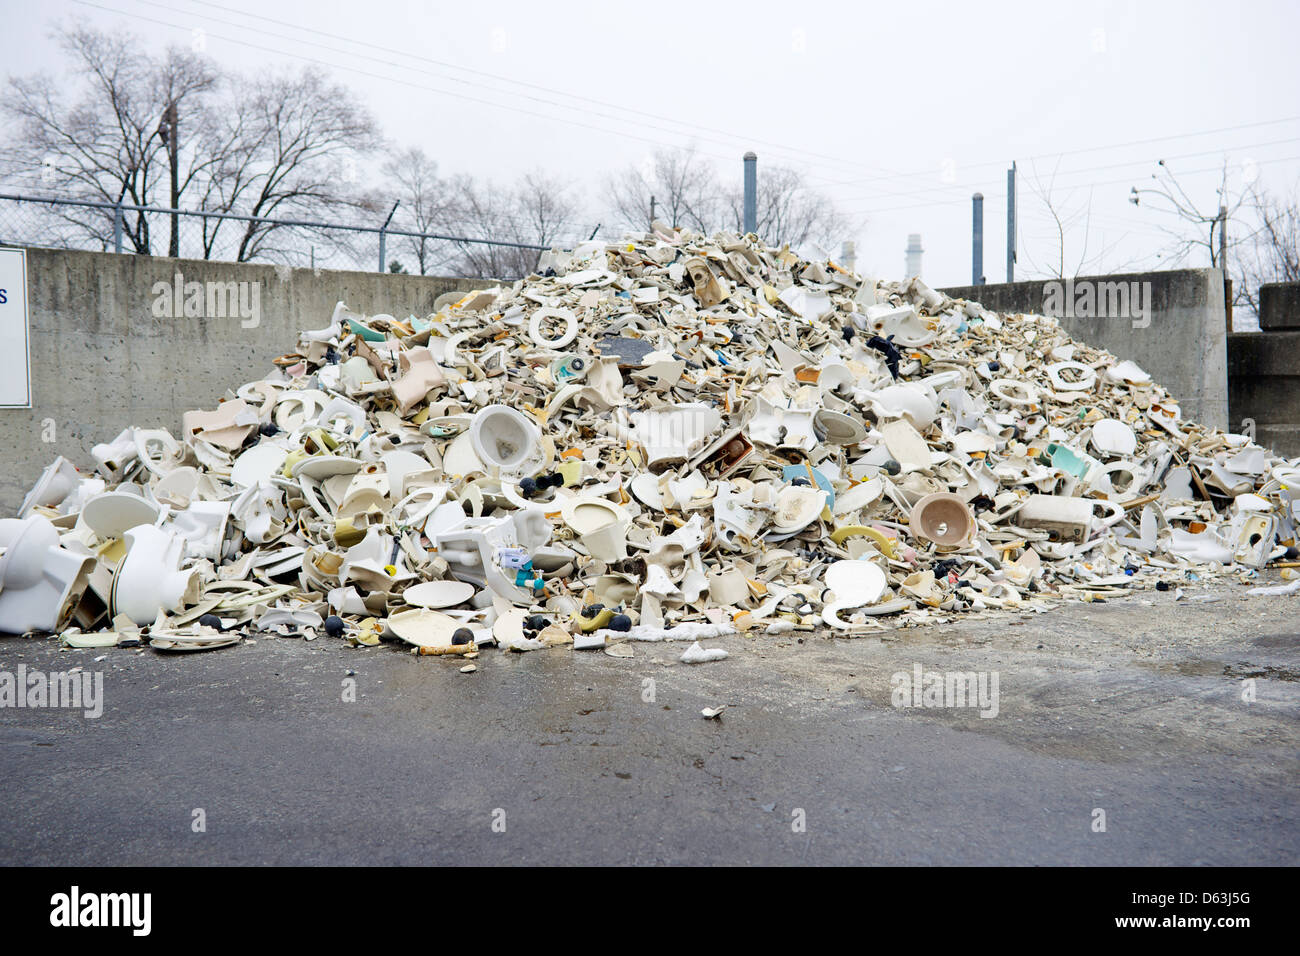 A pile of broken toilets and sinks at a city dump. - Stock Image